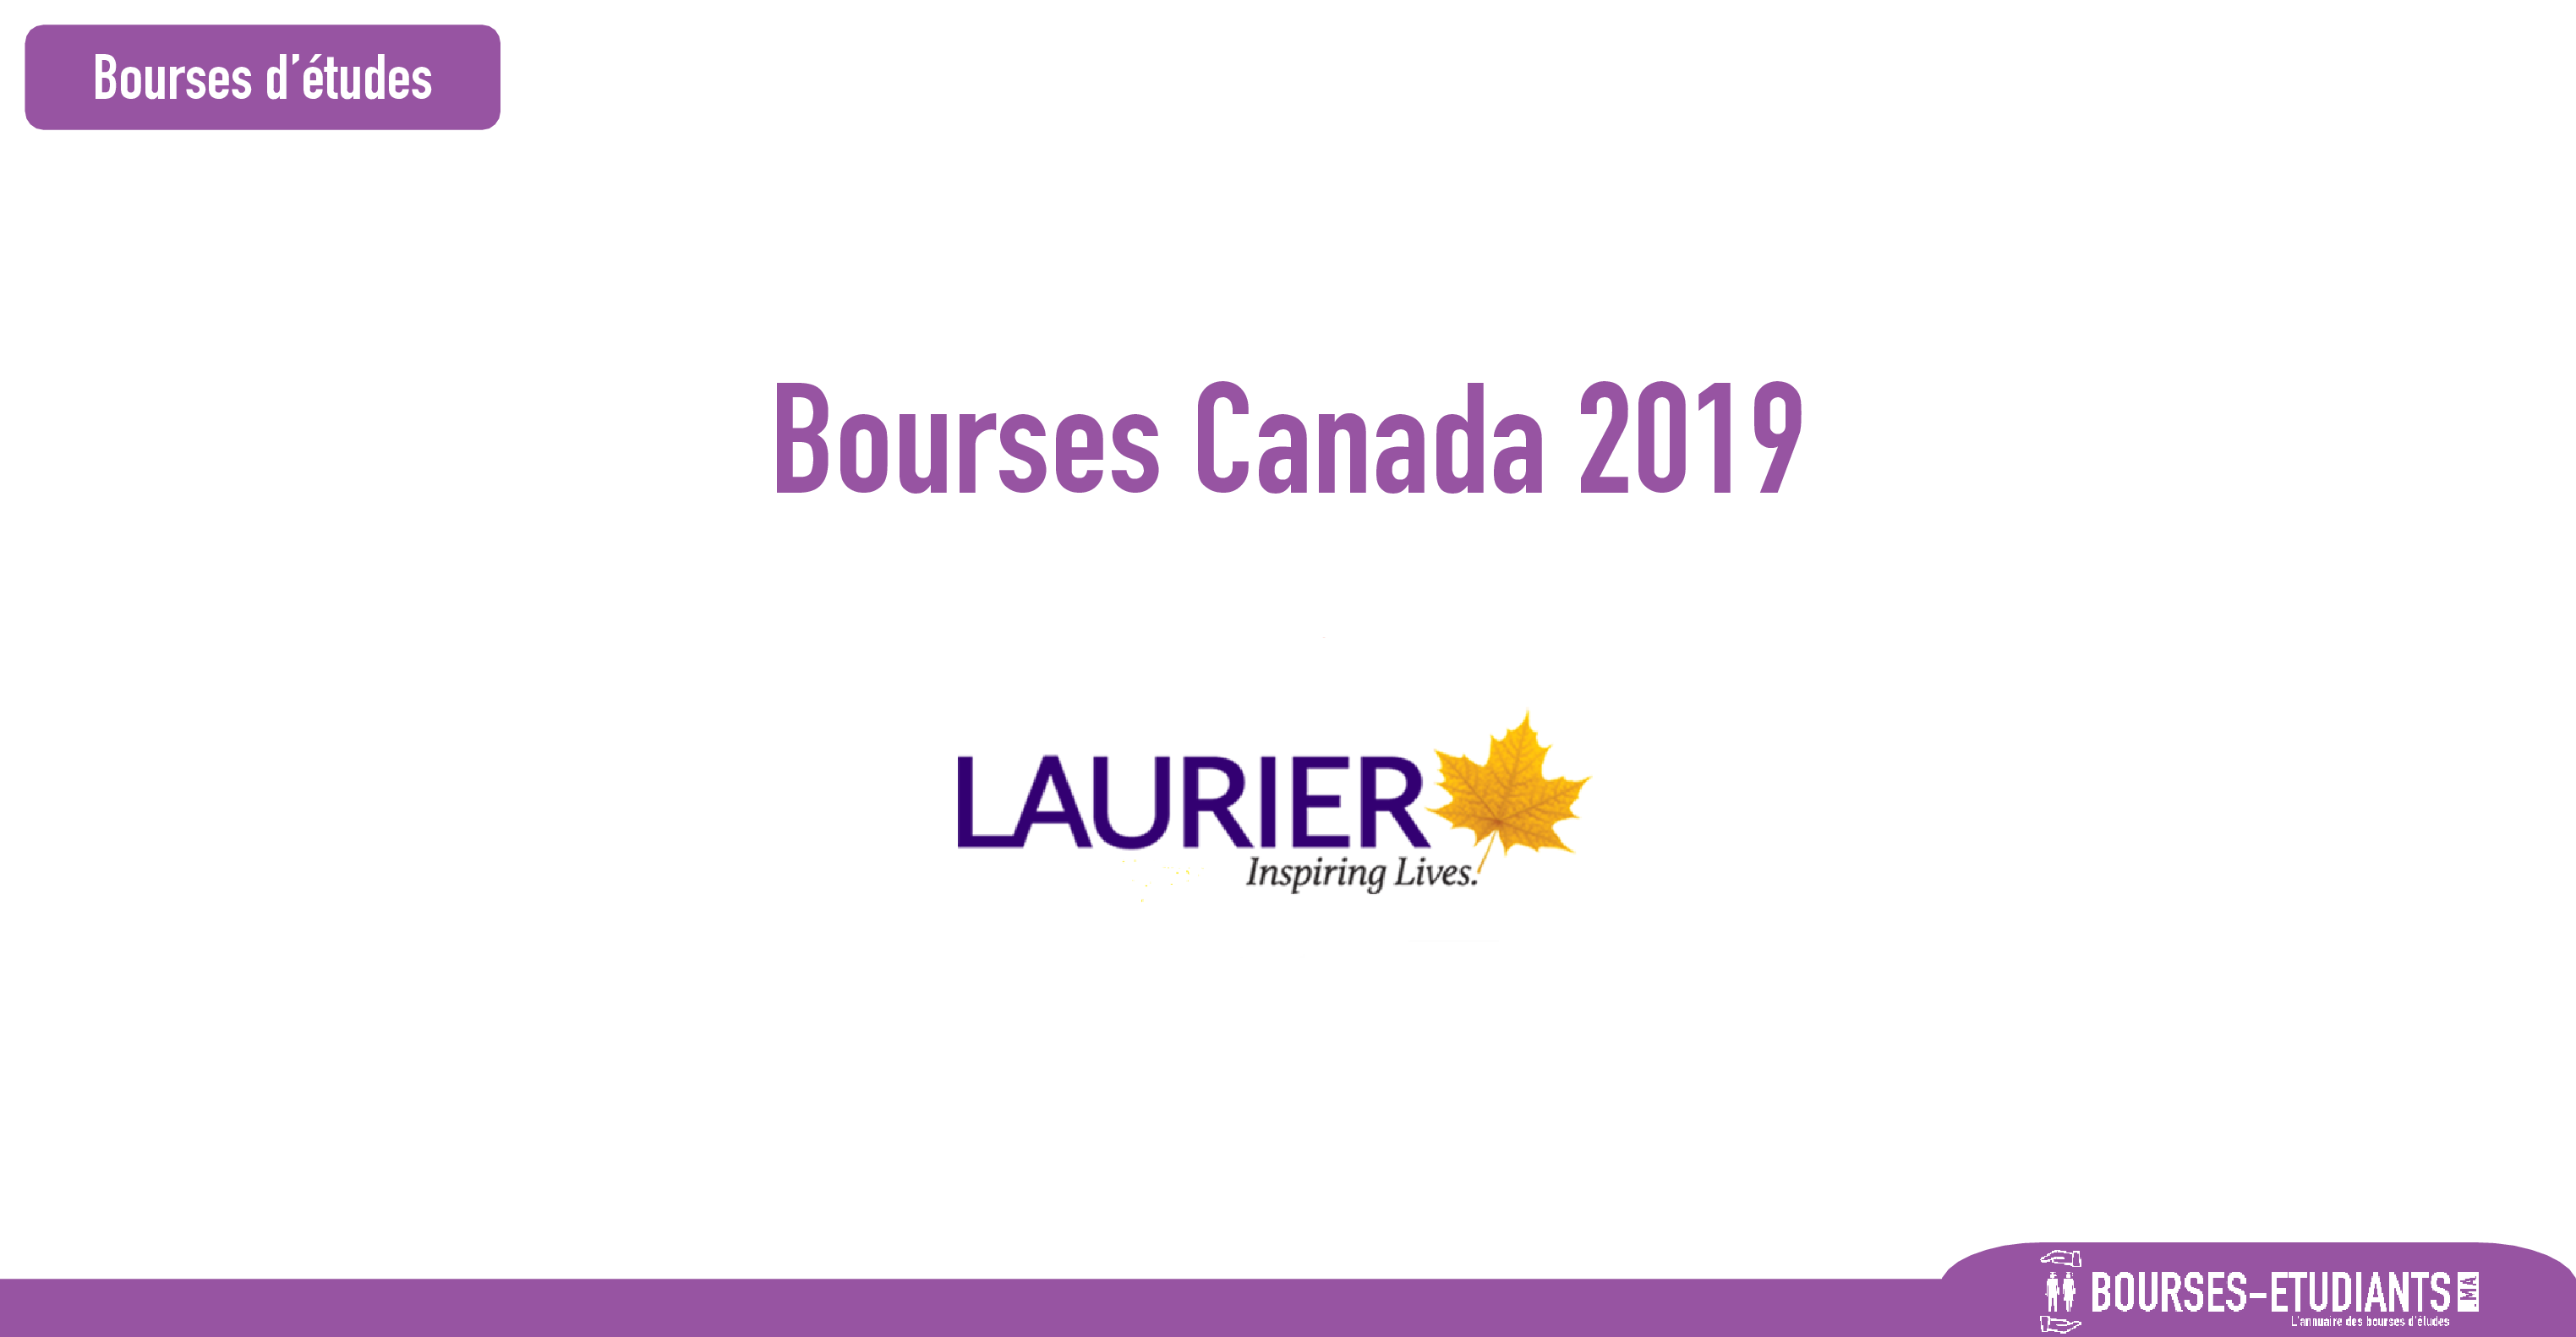 Bourses d'étude Canada 2019 : Scholarships for International